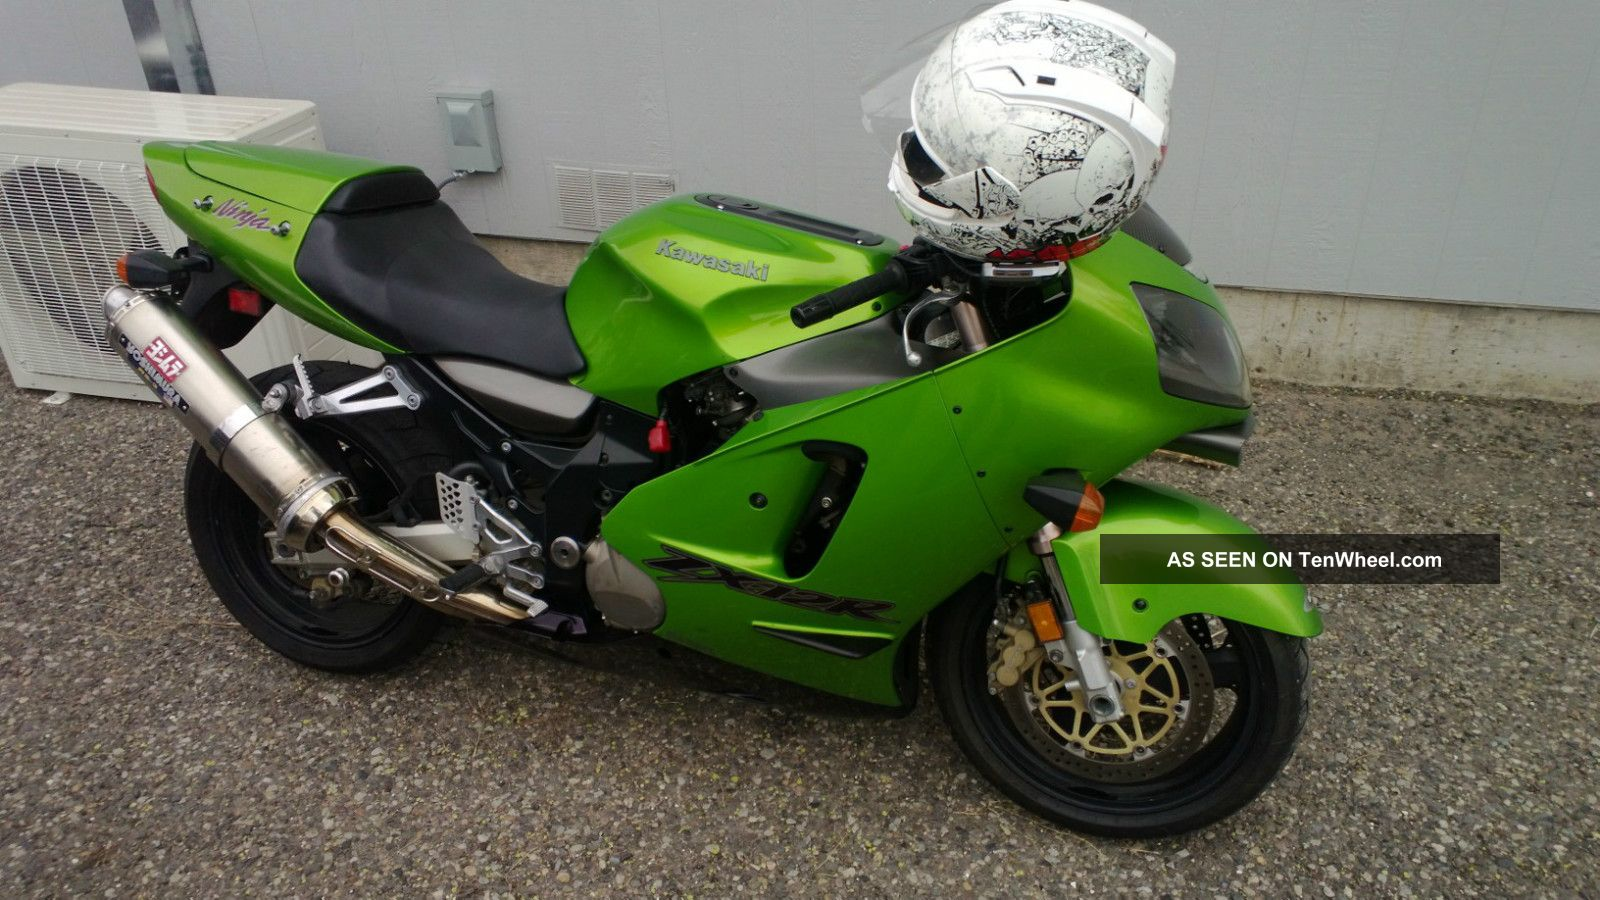 2000 Kawasaki Ninja Zx12r The Last Unrestricted Unlimited Bike Ninja photo